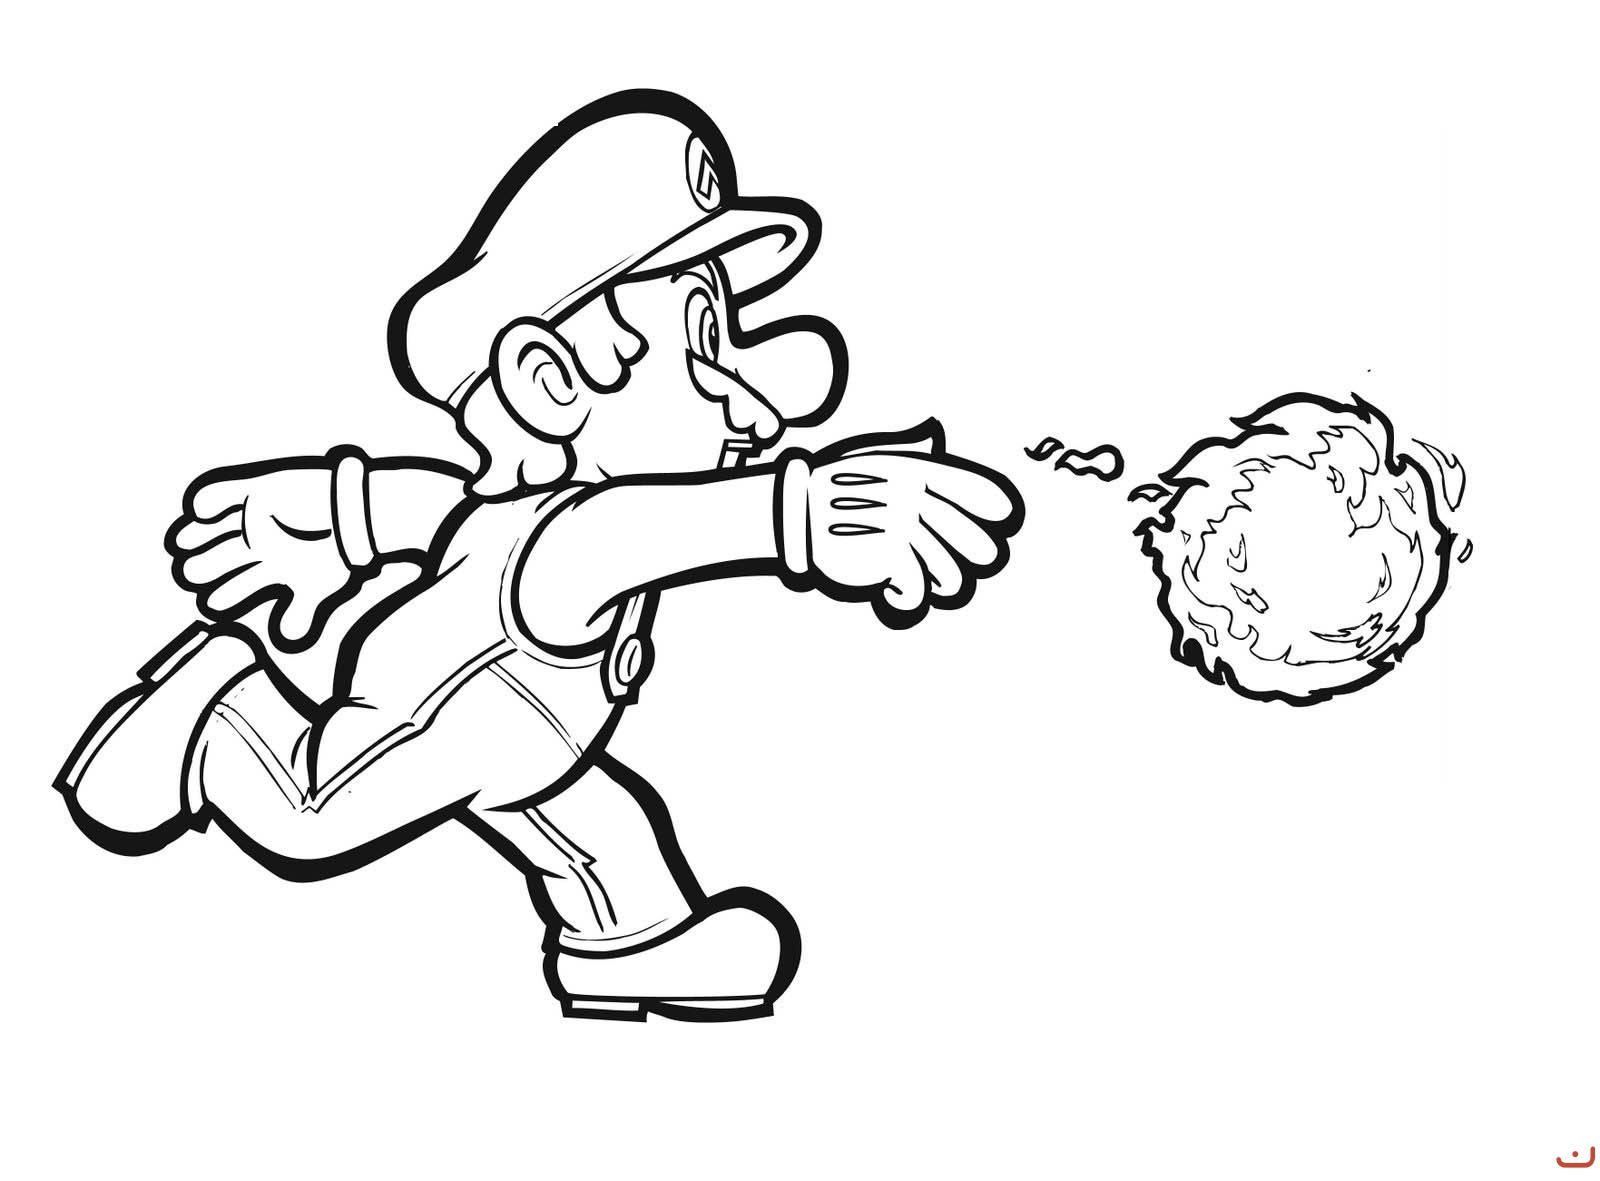 Mario Throwing Fire (JPG)